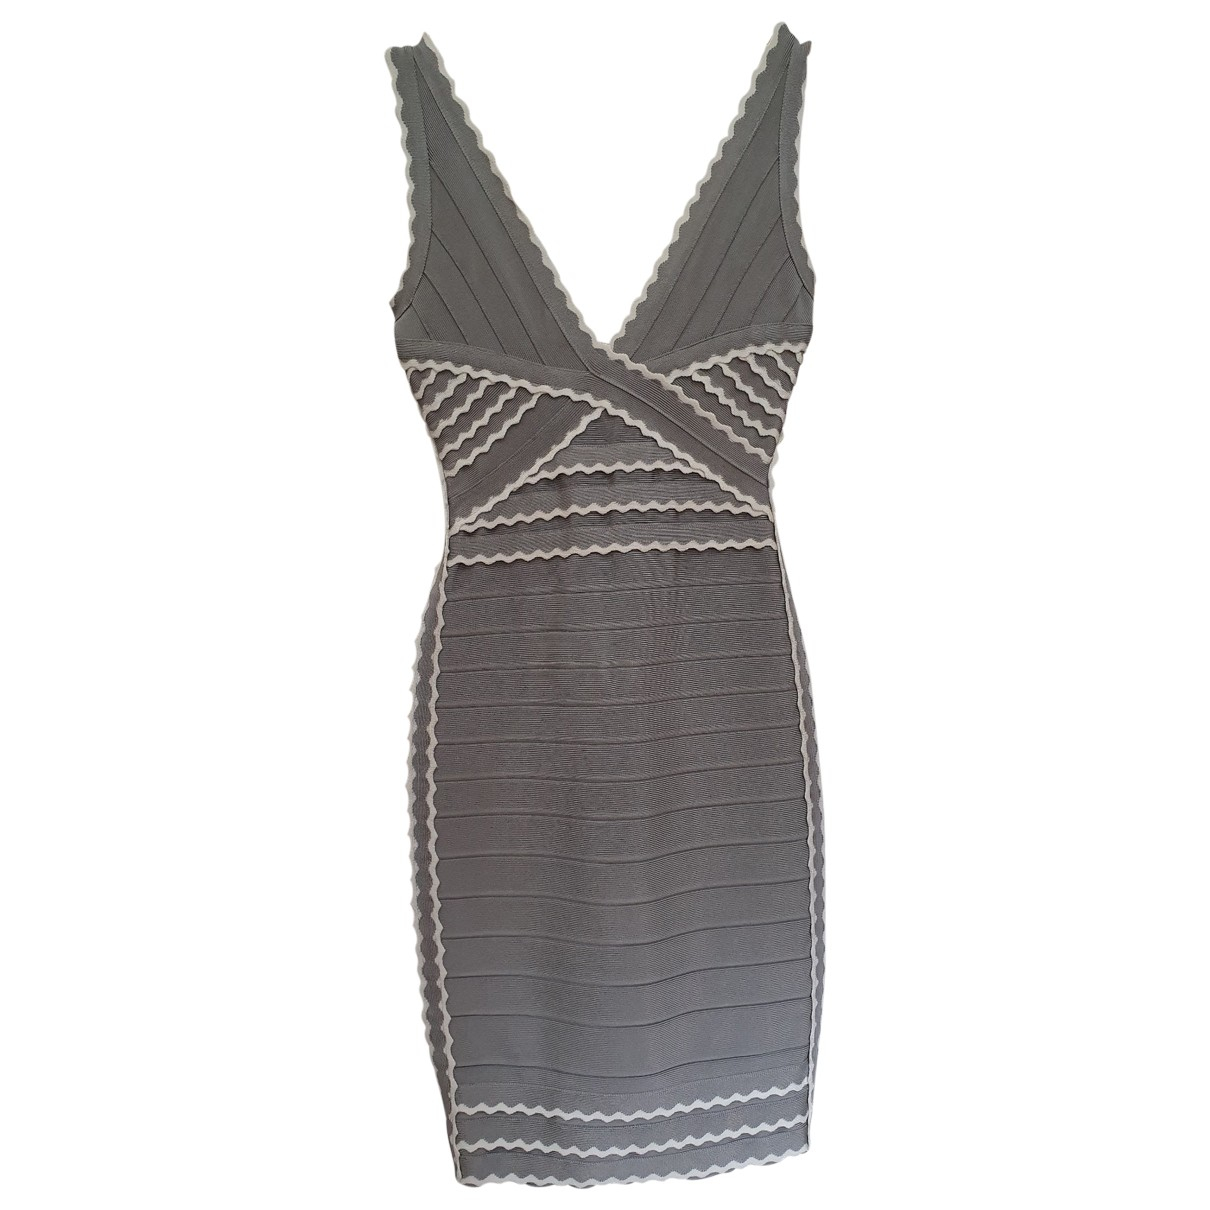 Herve Leger \N Grey dress for Women XS International